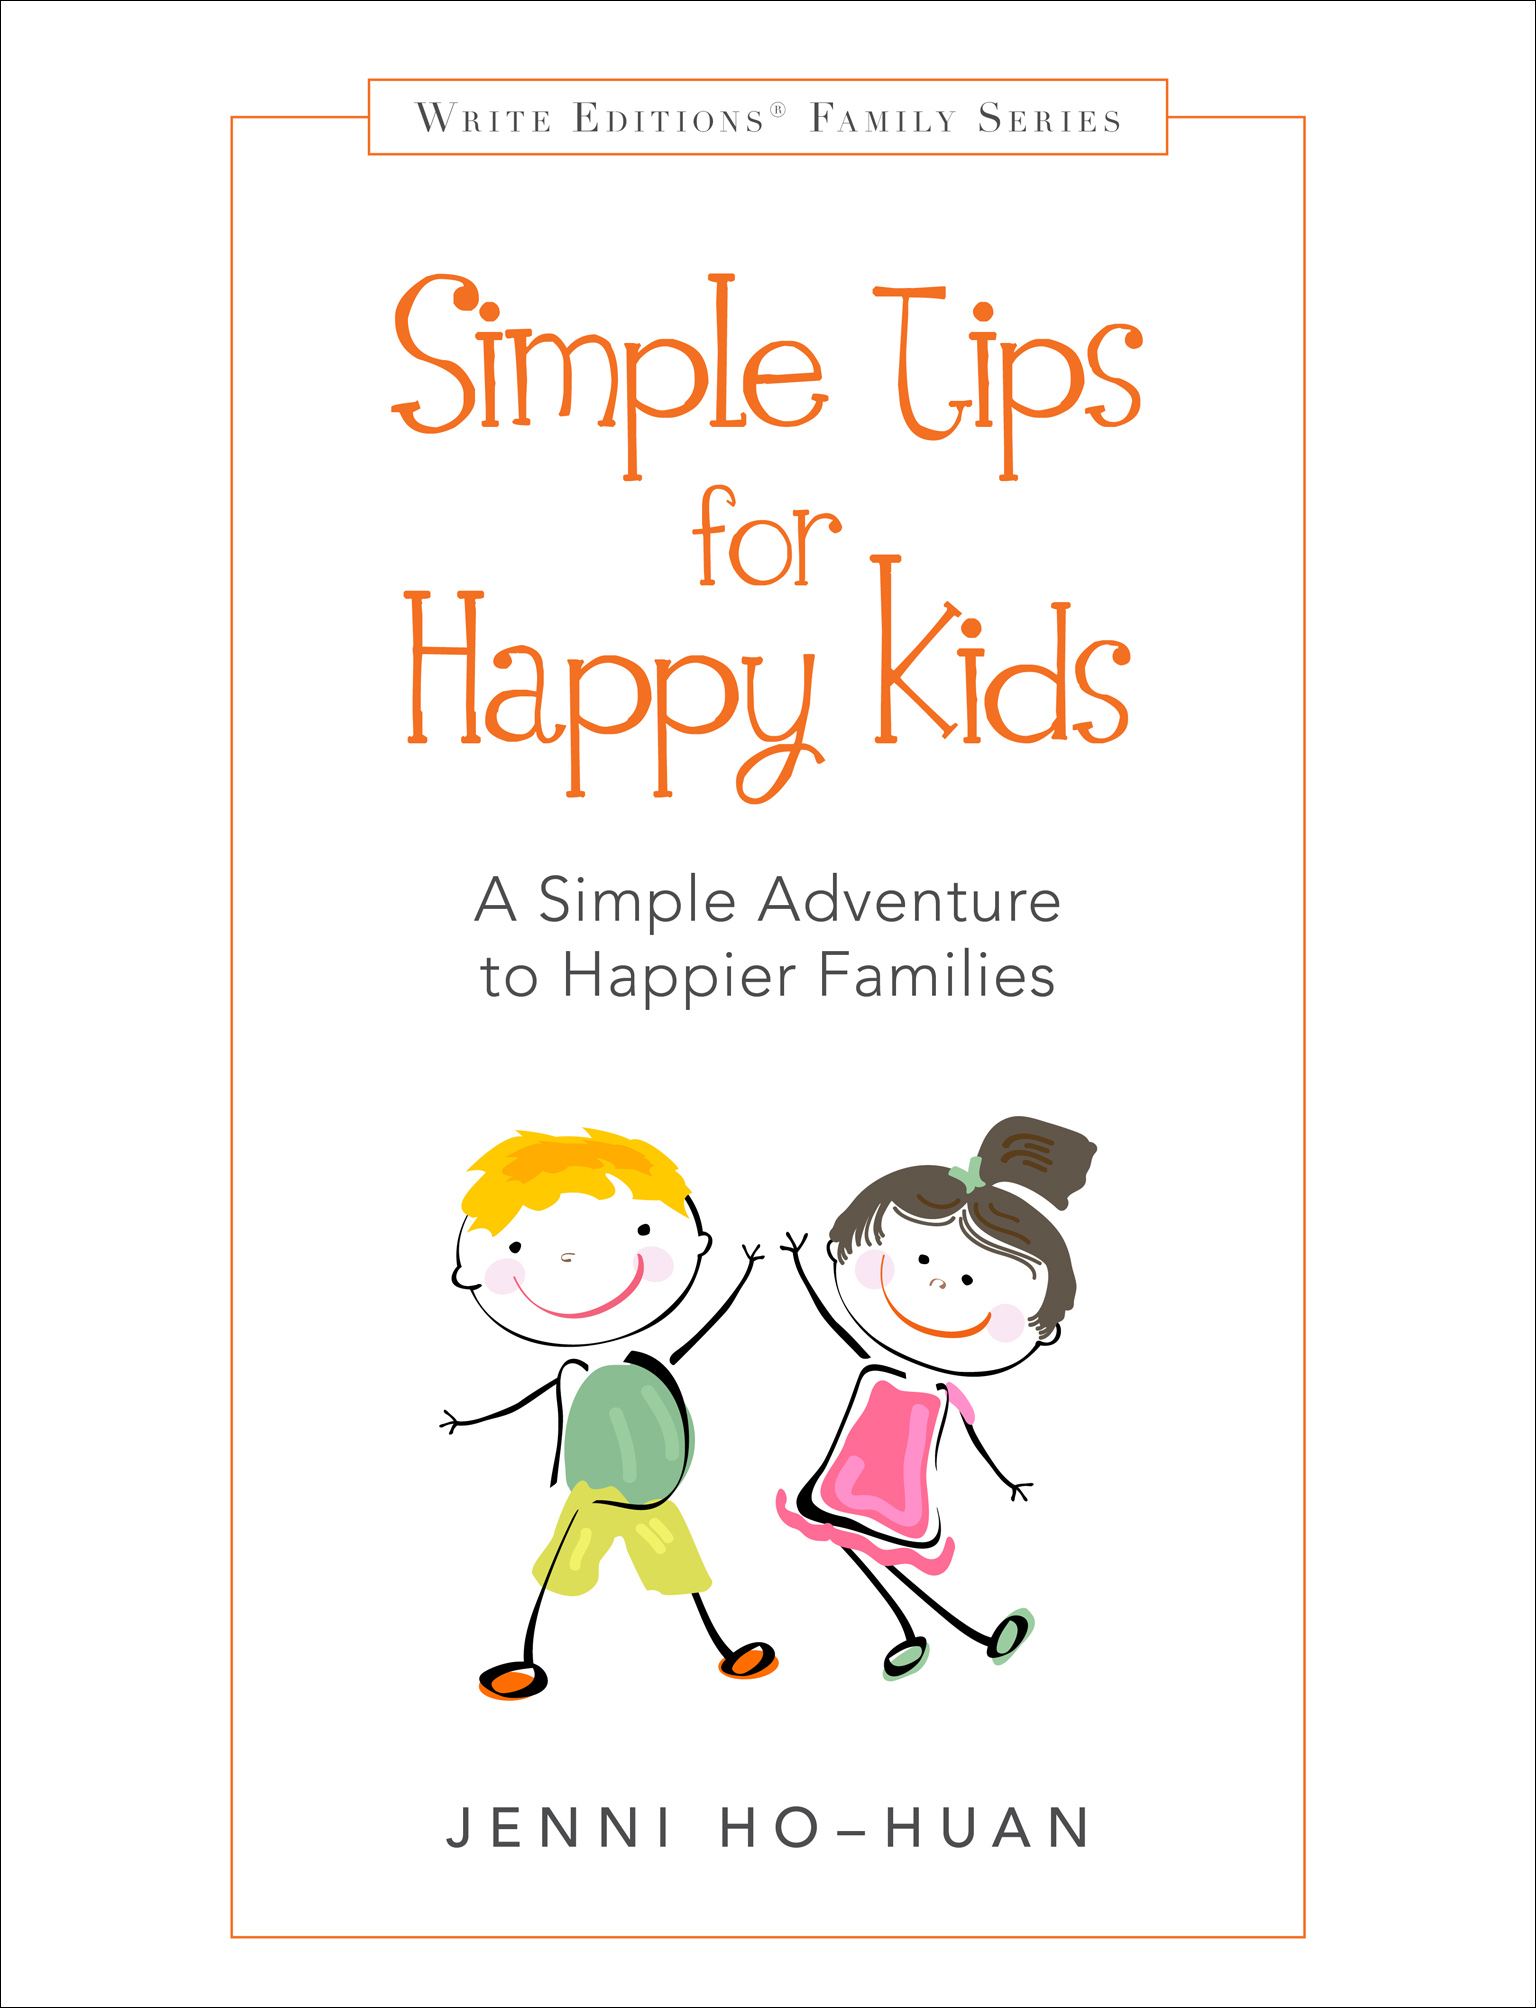 Simple Tips for Happy Kids